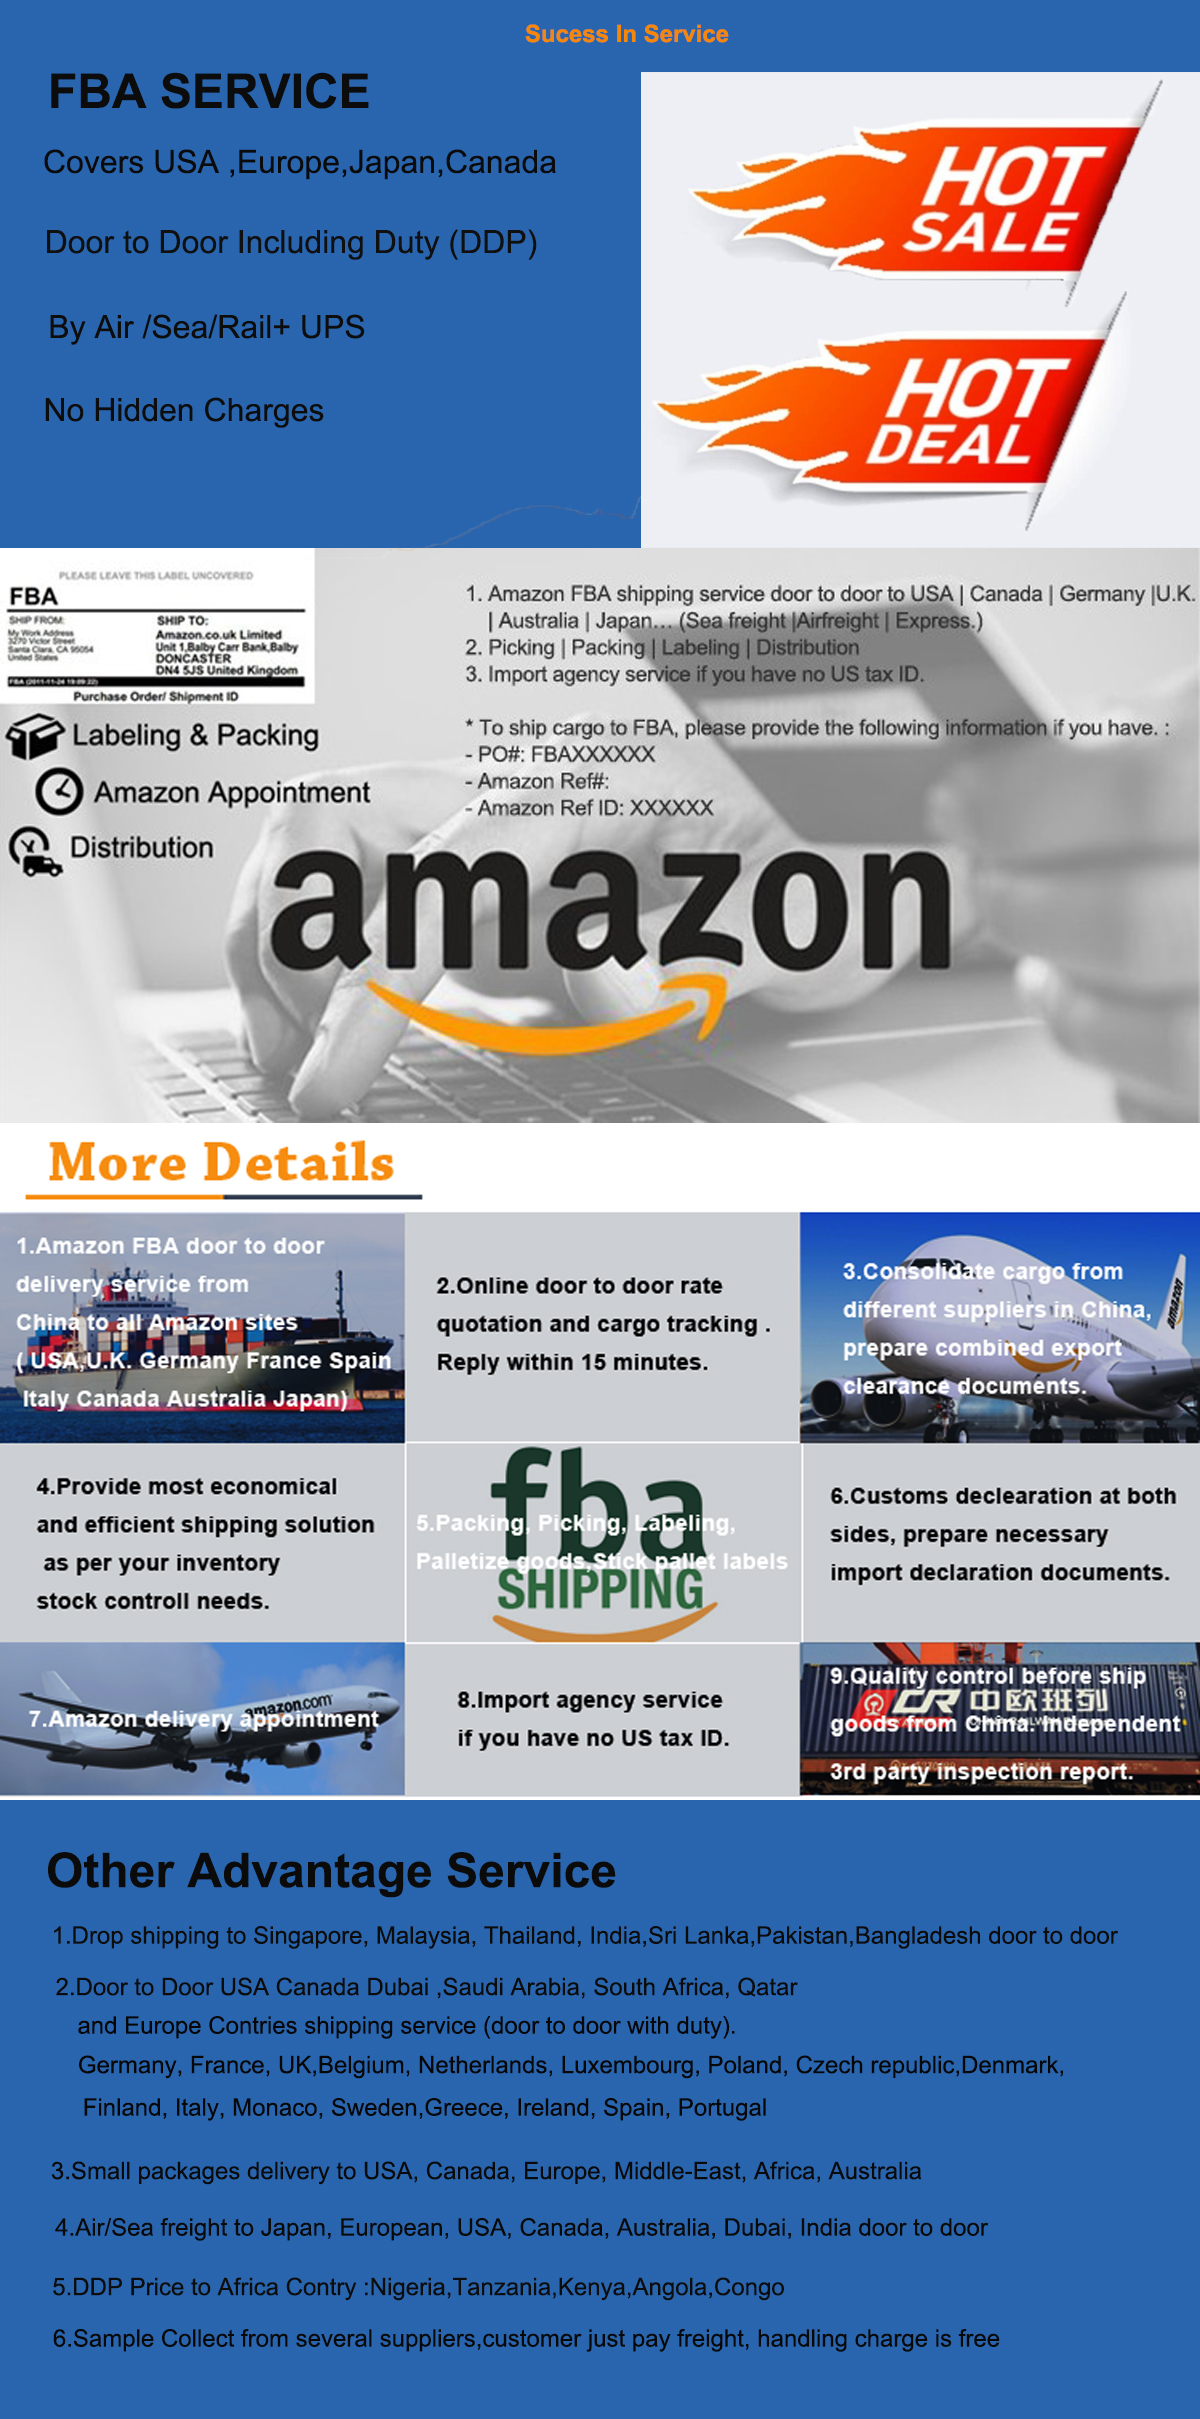 Amazon Usa Livraison France Shenzhen Honour Ocean Shipping Co Ltd Sea Freight Air Freight